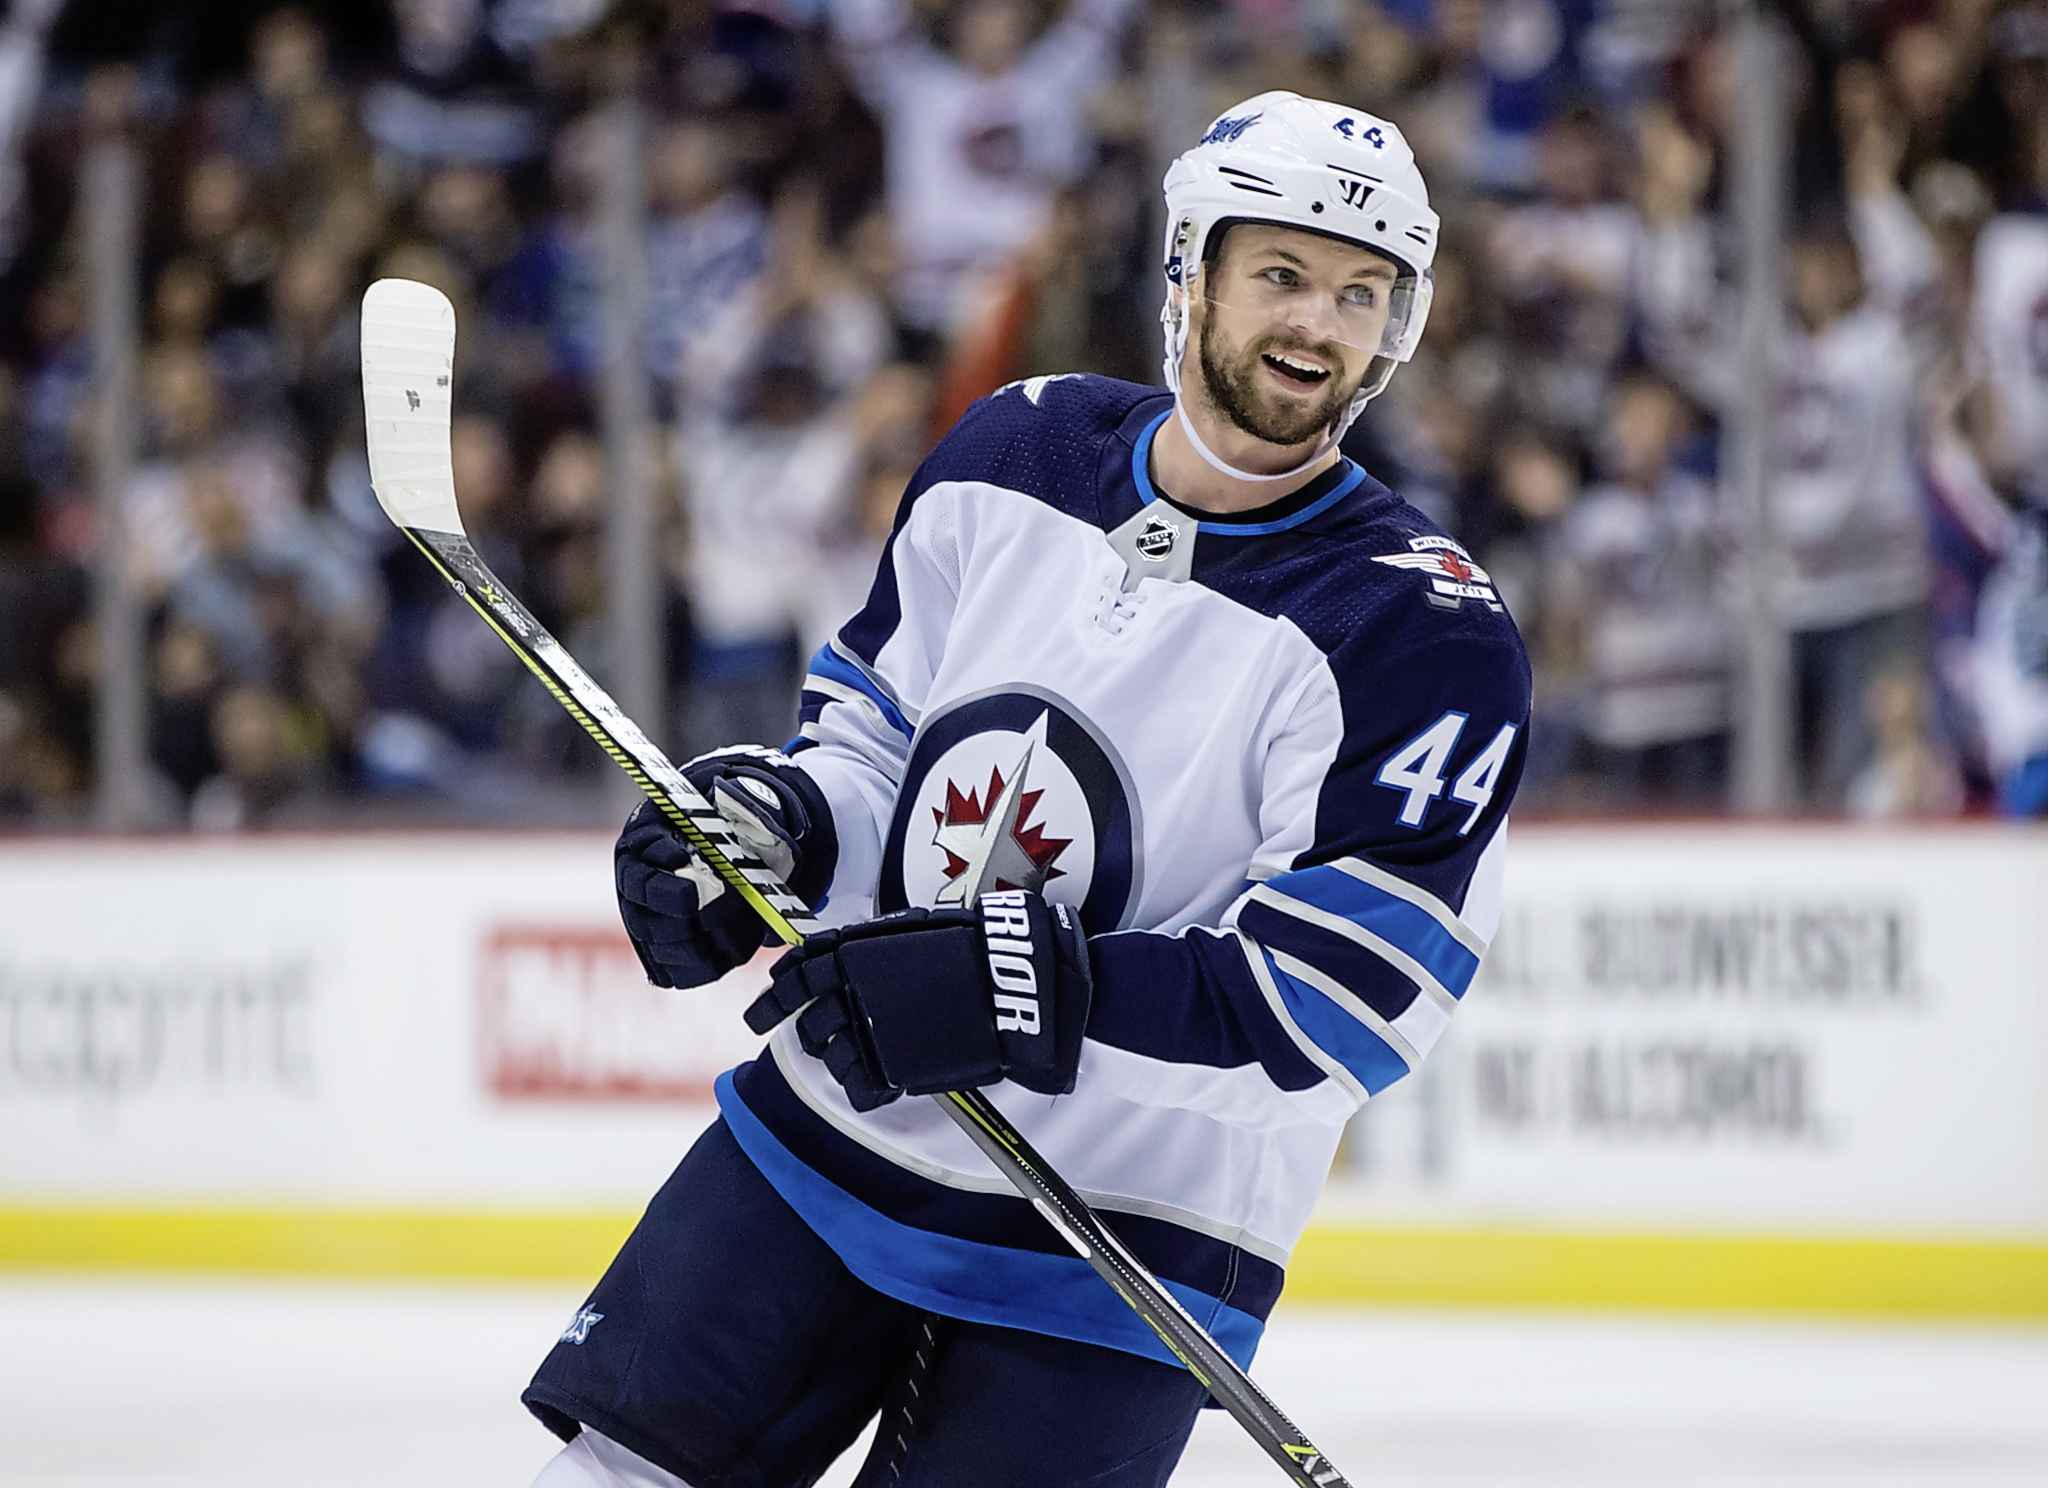 Morrissey had seven goals and 19 assists in 81 regular-season games last season with the Jets. (Darryl Dyck / The Canadian Press files)